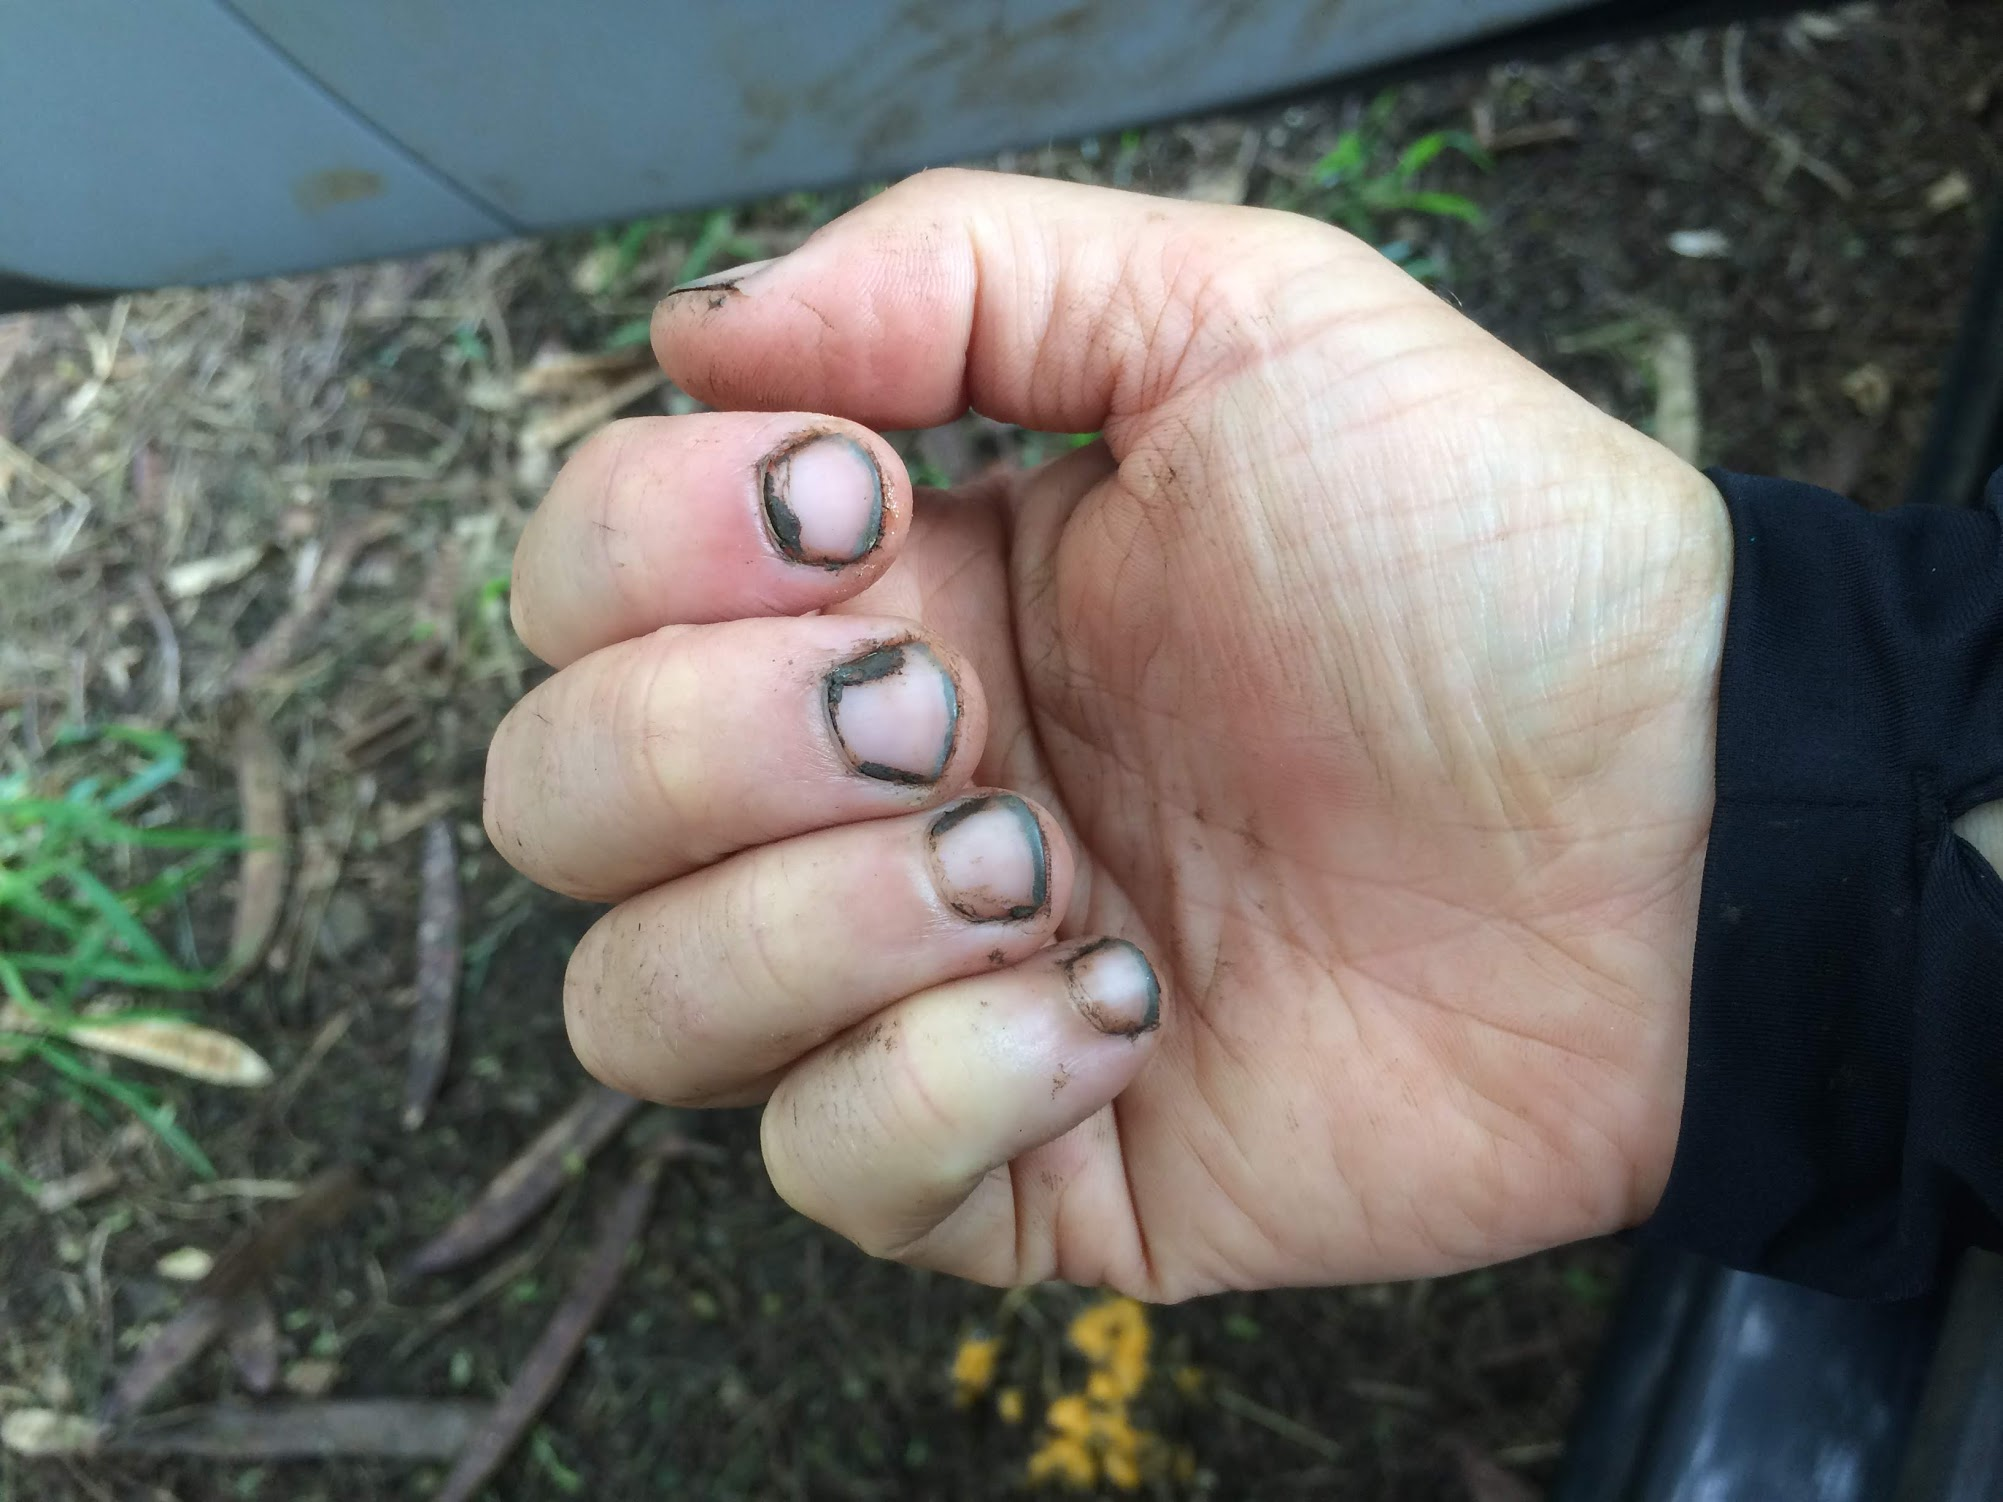 dirtfingernails.jpg